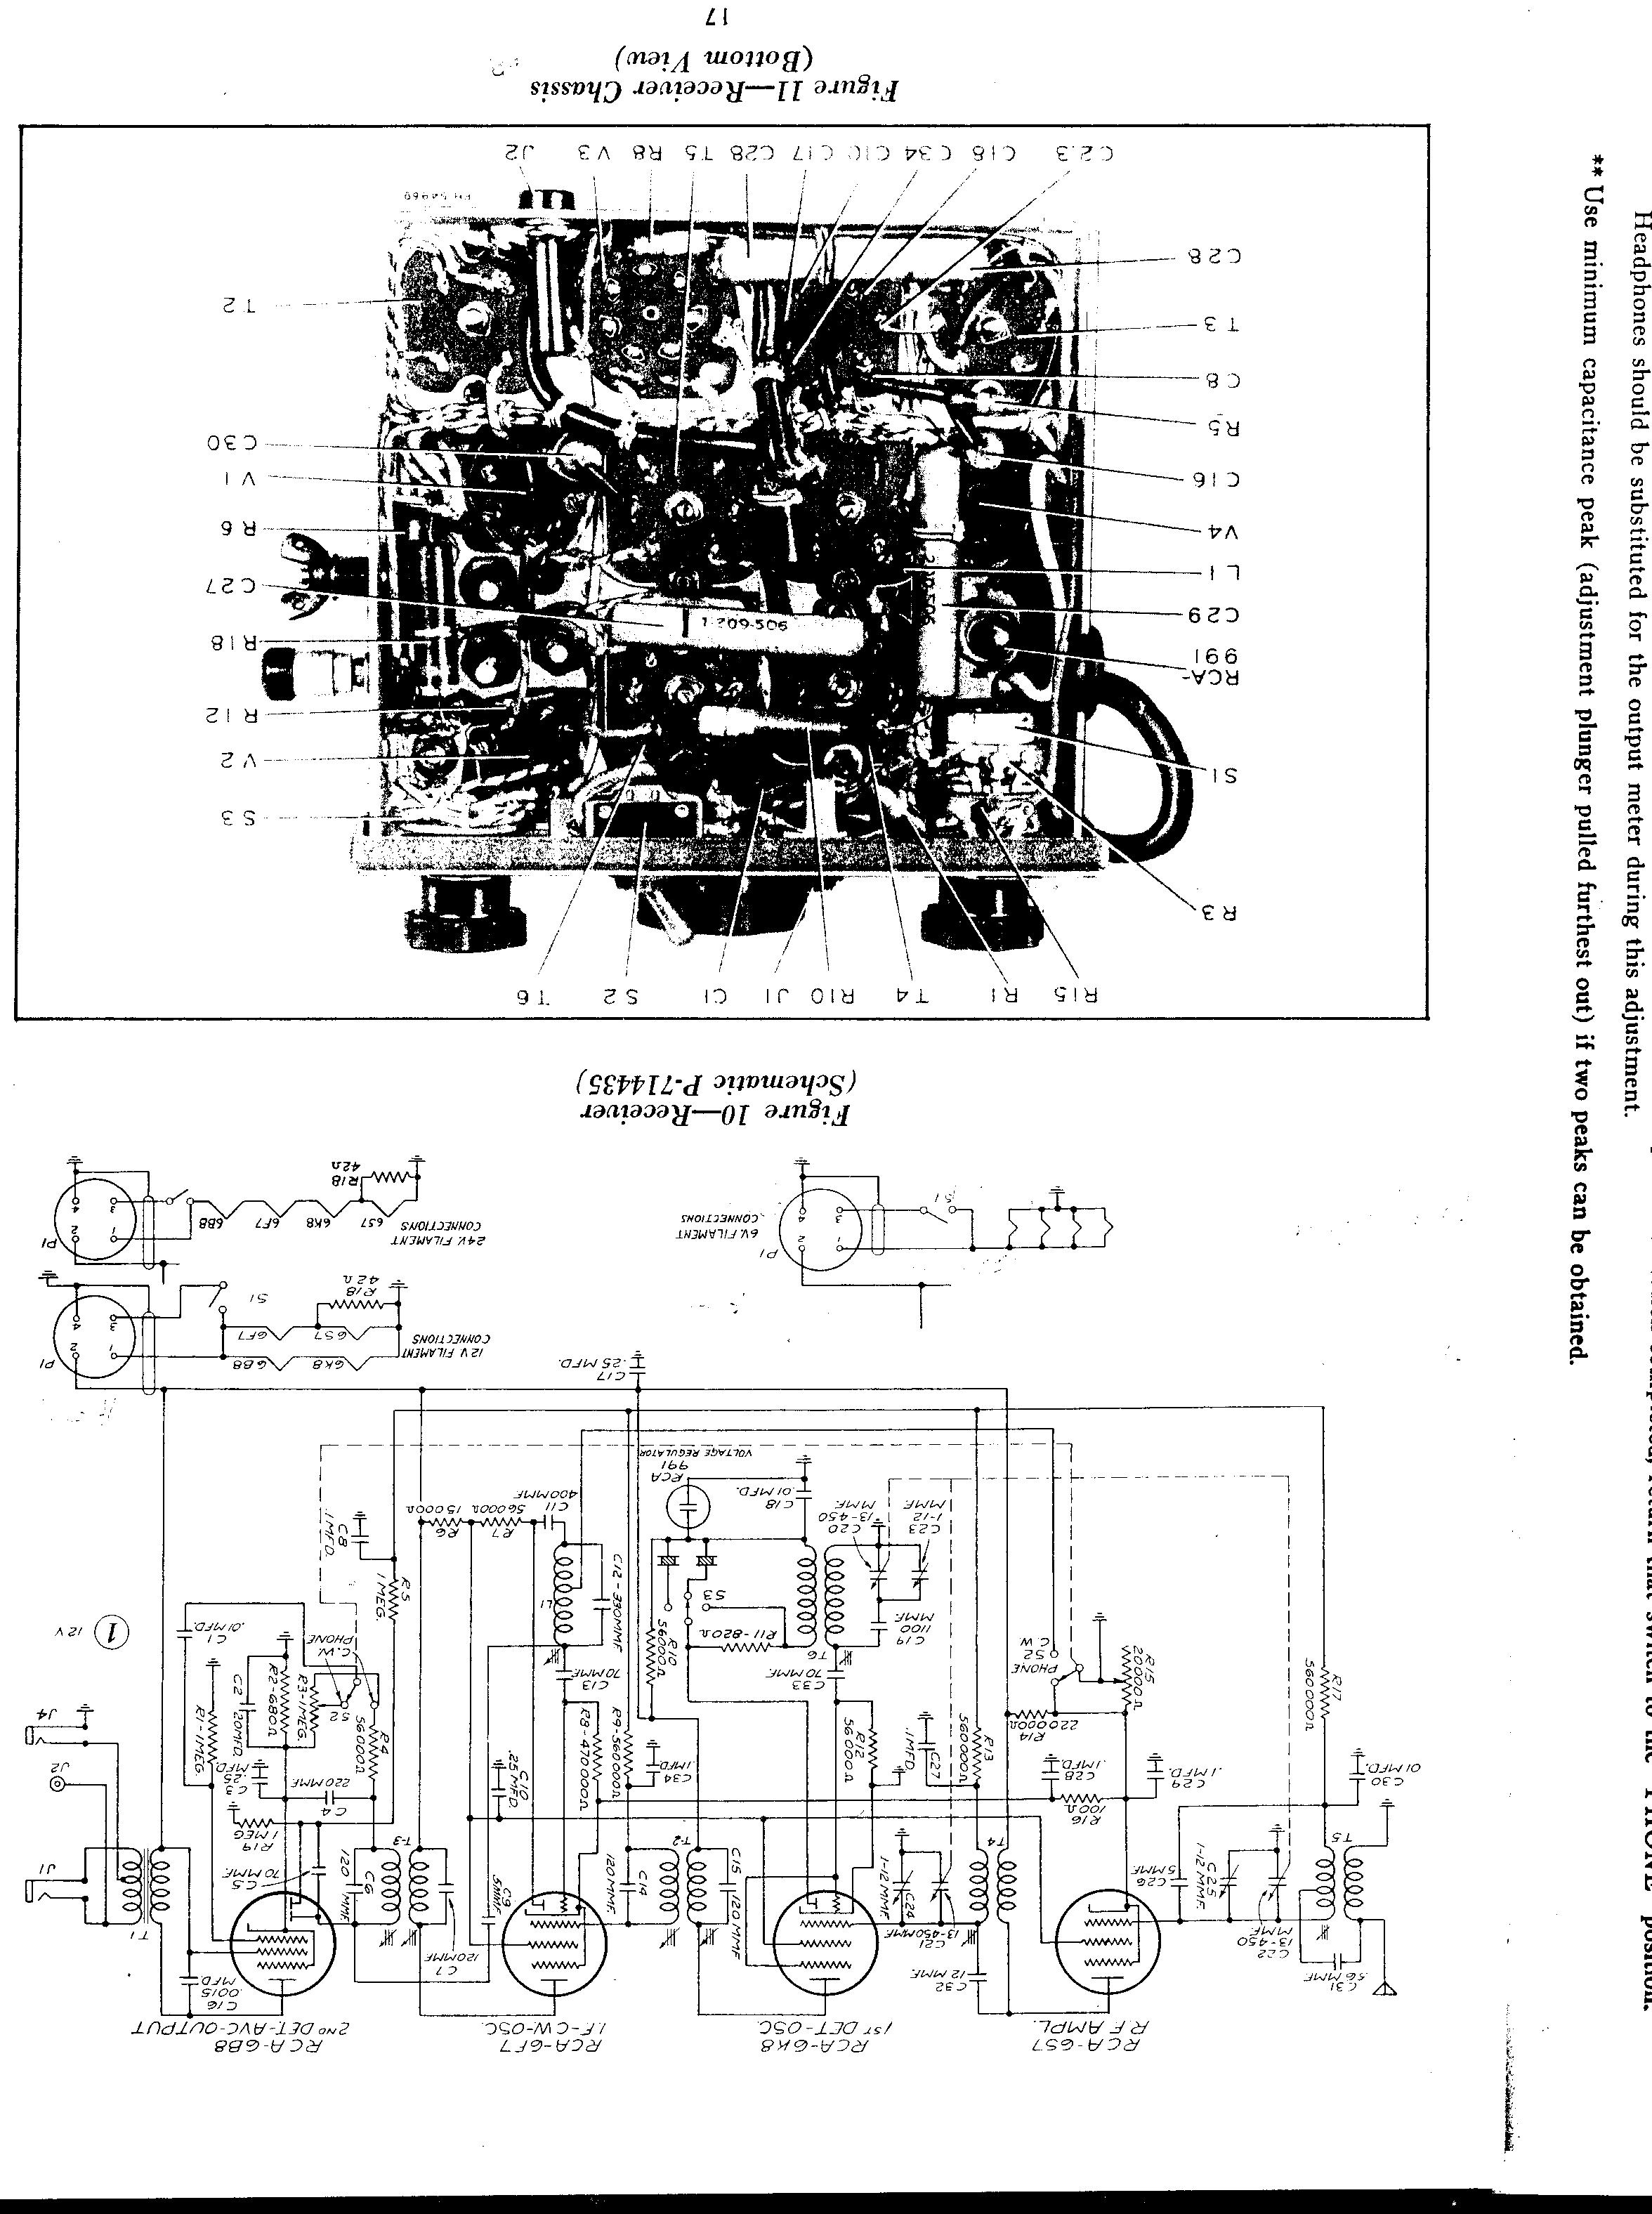 Aircraft Receiver Schematics